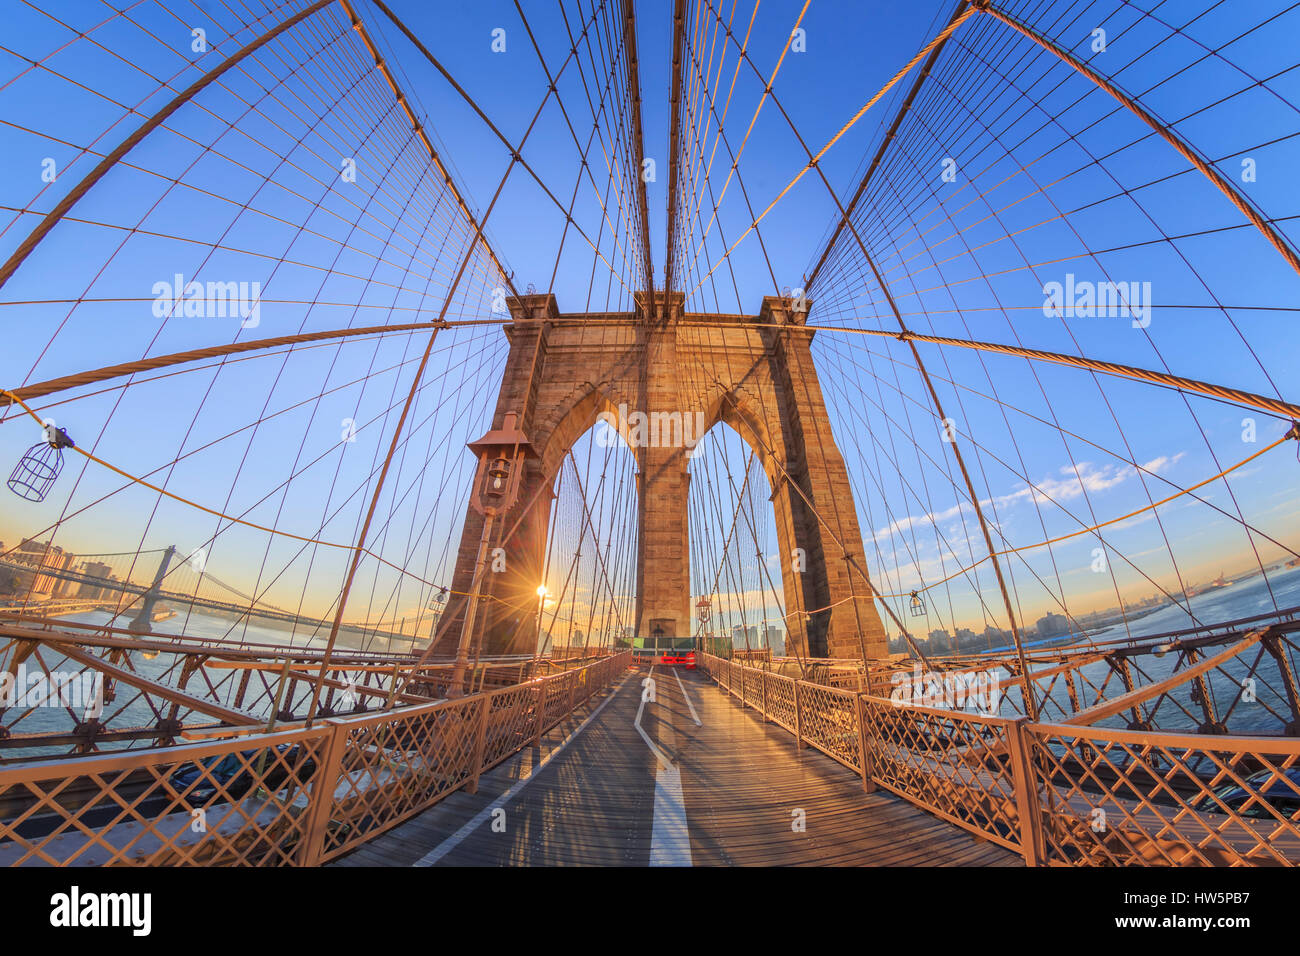 USA, New York und Brooklyn Bridge Stockbild